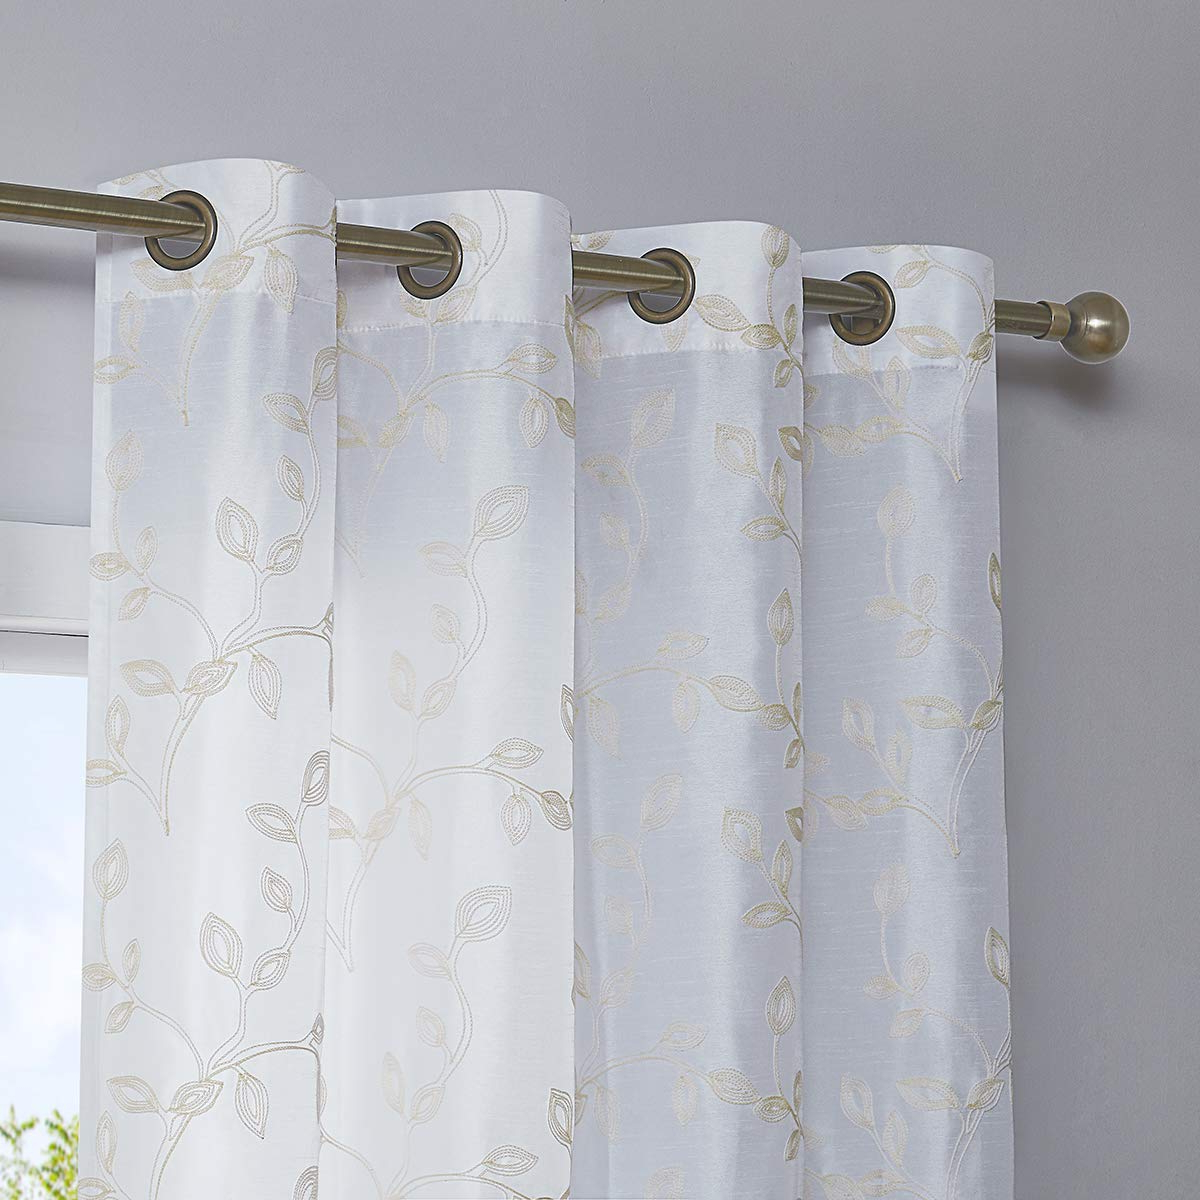 Faux Silk Embroidered Semi Sheer Curtains For Bedroom, Grommet Floral Embroidered Sheer Window Curtains For Living Room, 52 X 84 Inch Long, White, 2 Intended For Most Recent Floral Embroidered Faux Silk Kitchen Tiers (View 15 of 20)